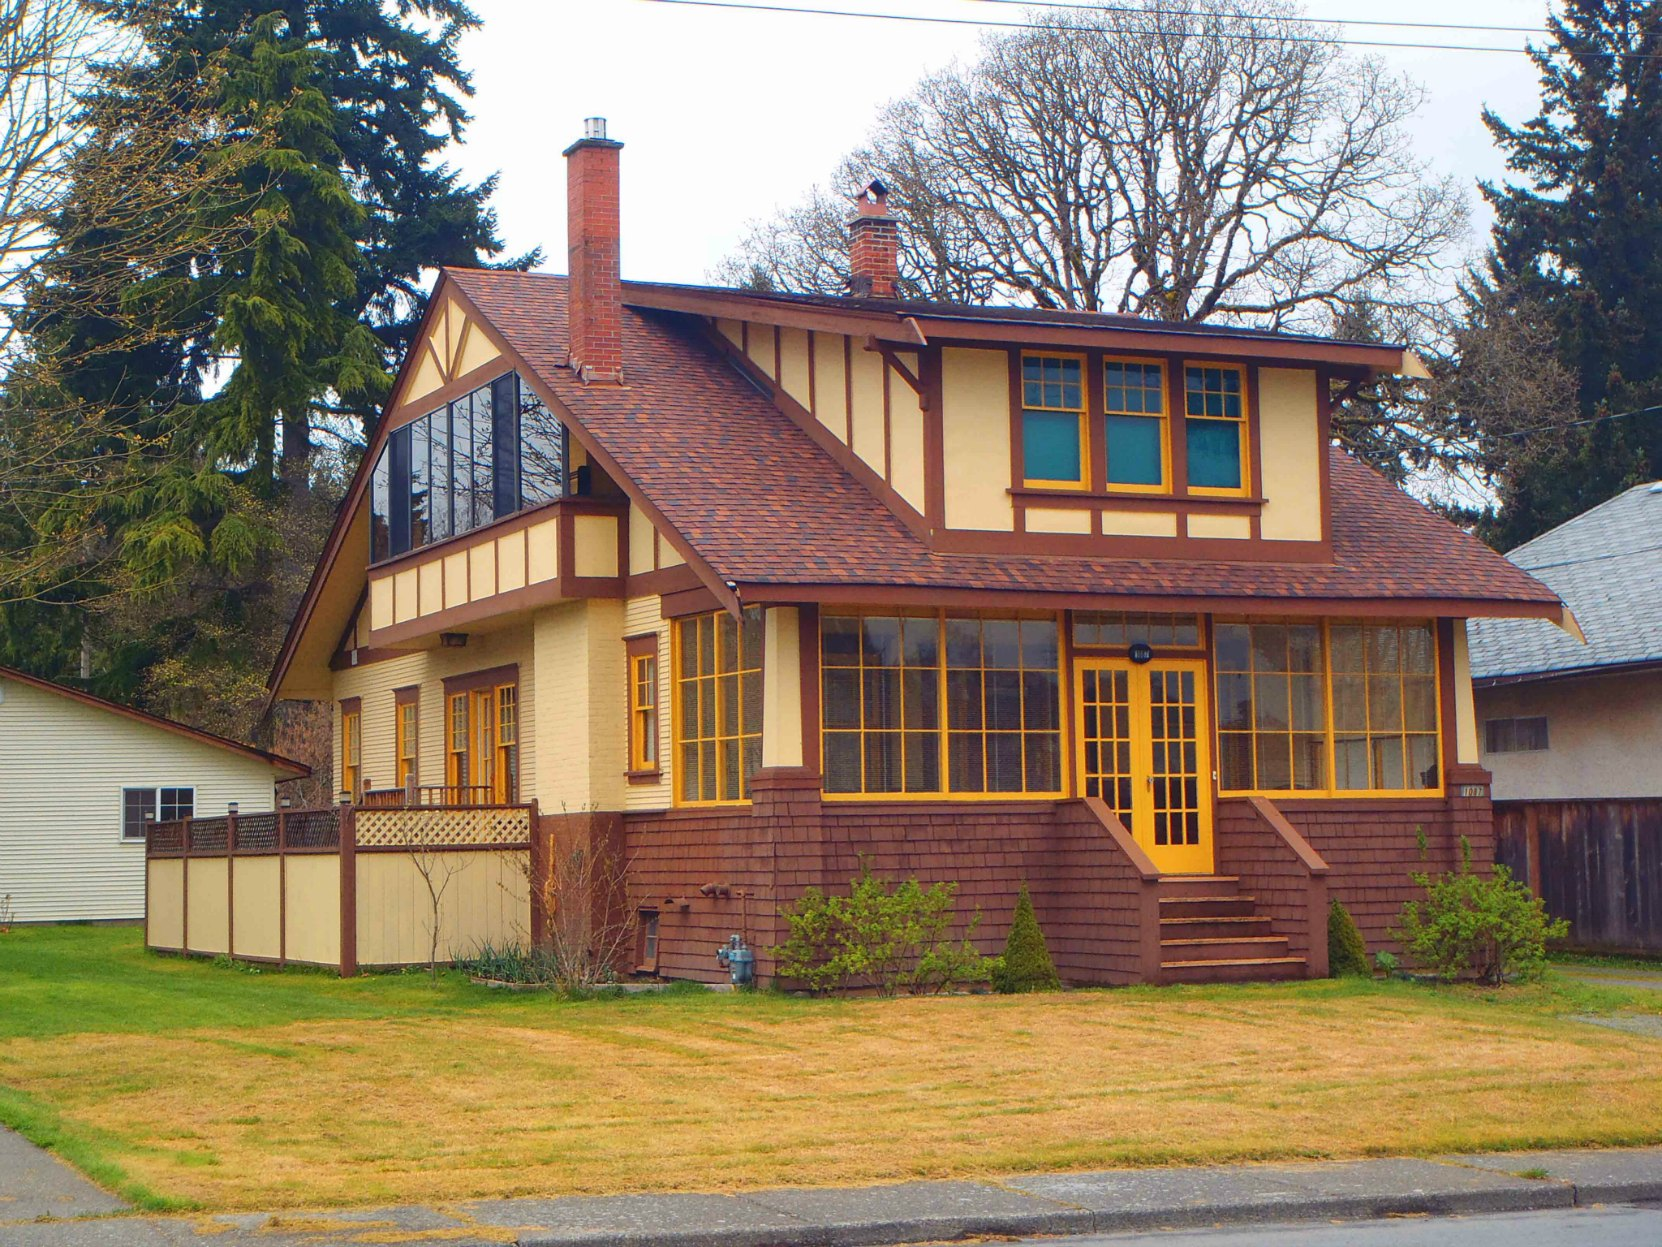 Charles William O'Neill built this house at 1087 Islay Street, Duncan circa 1920 and lived here until his death in 1963.